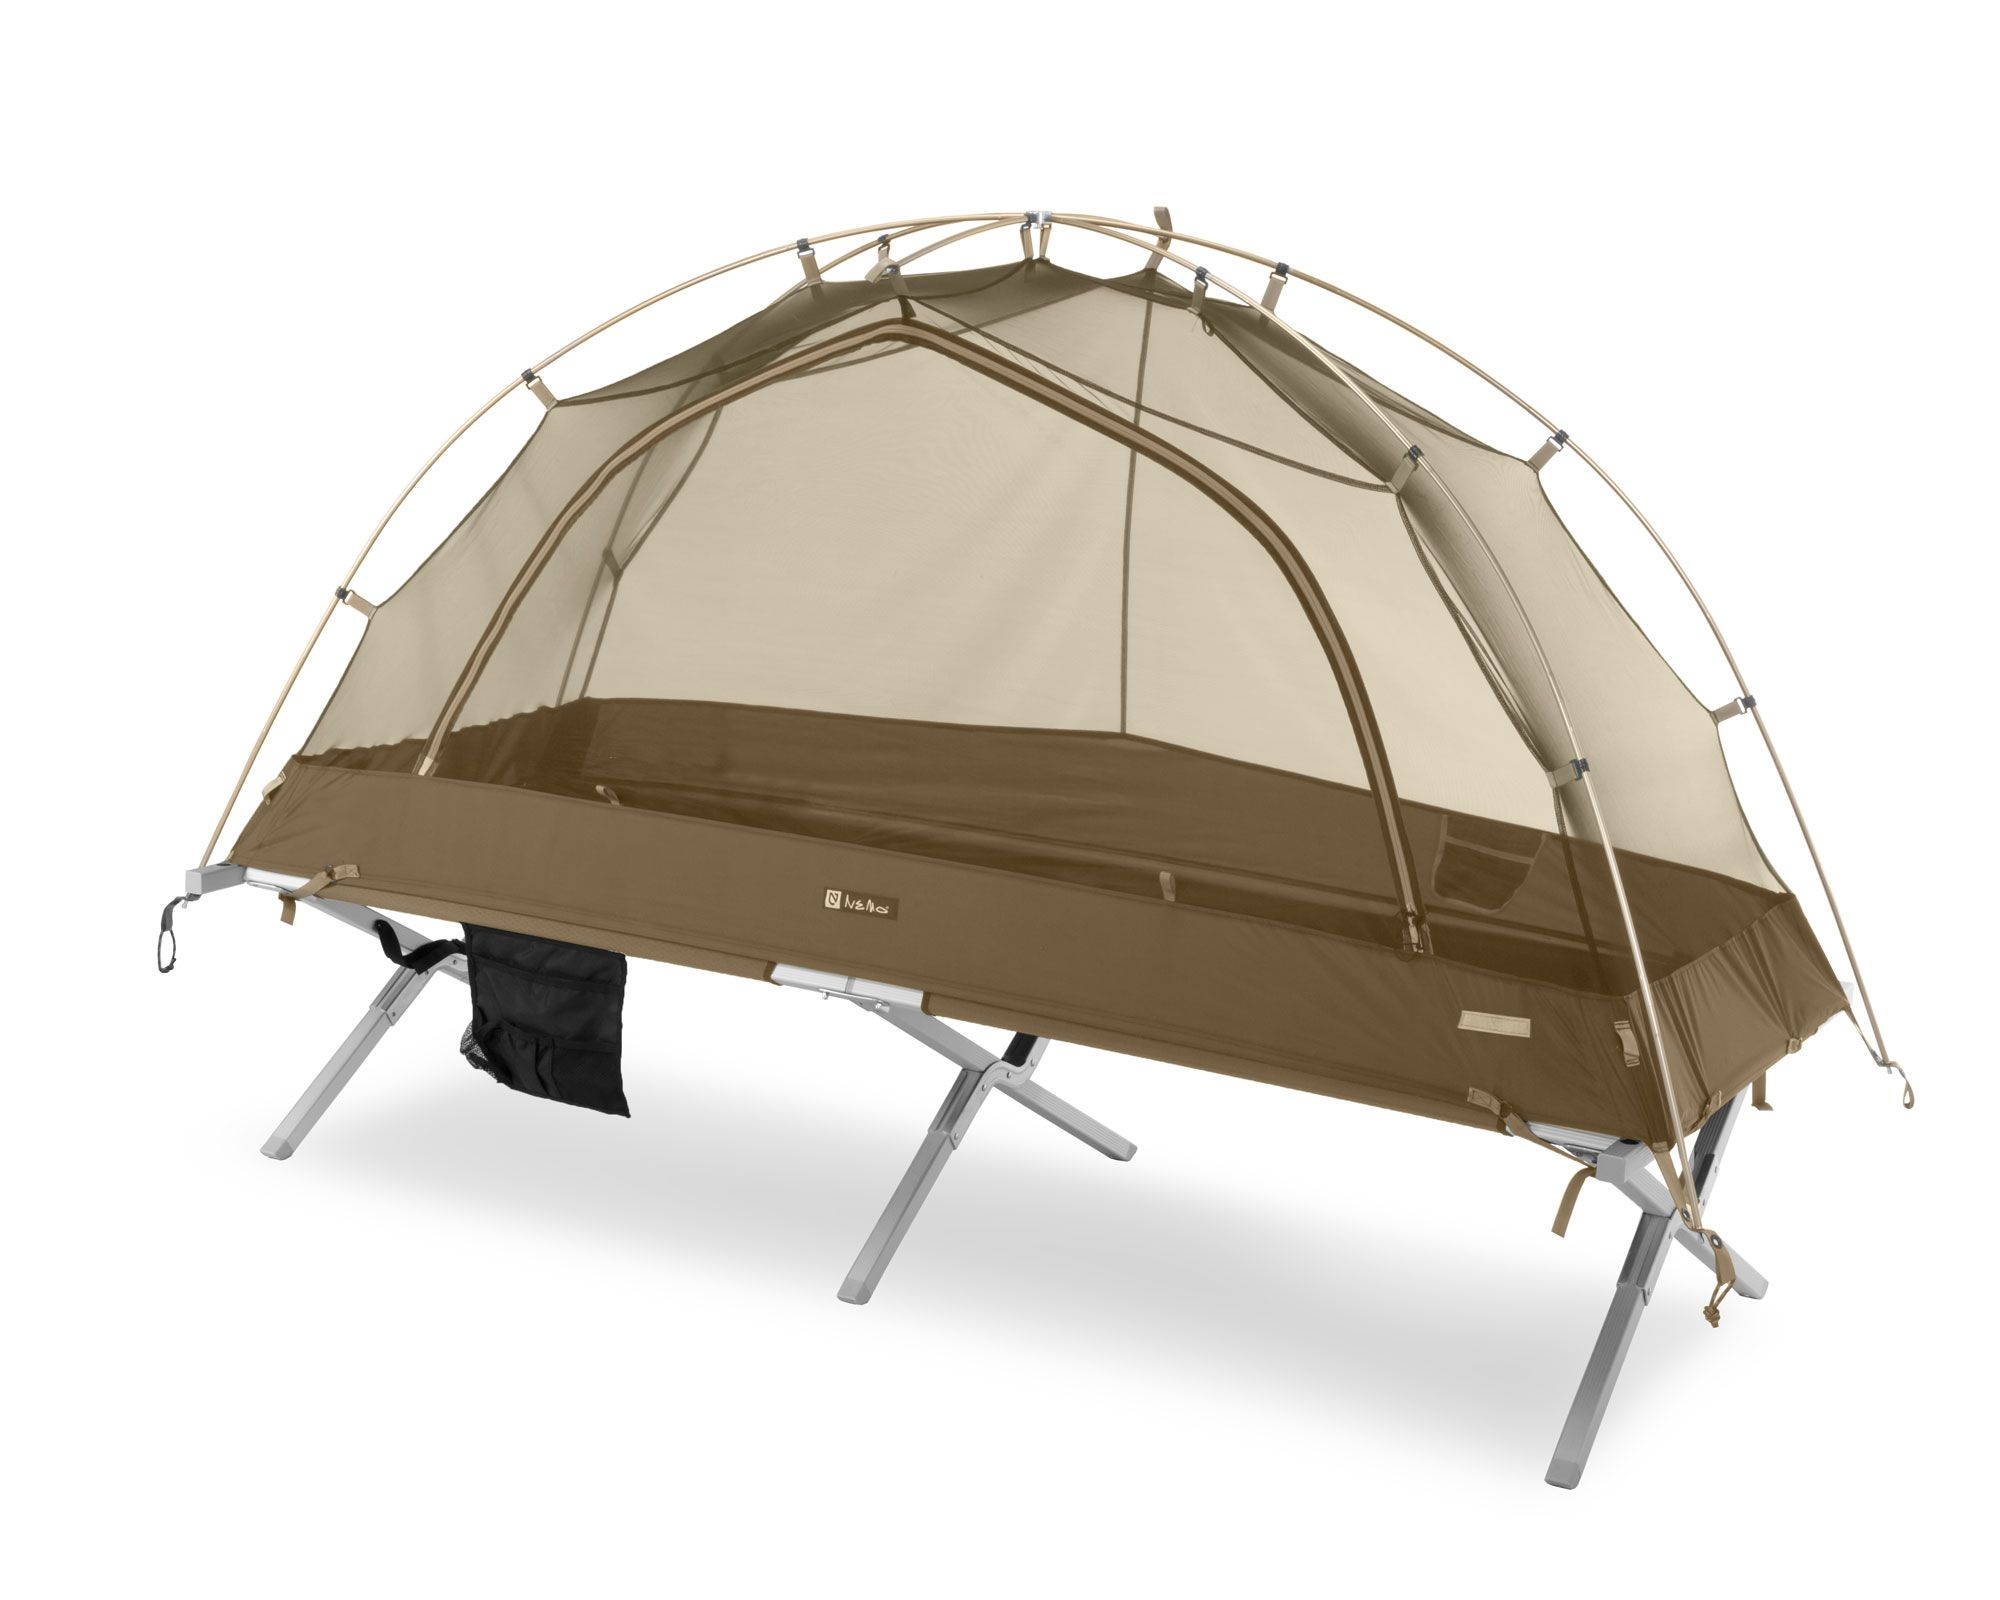 A coffin tent. NEMO Switch 1P One Person C&ing Tent | NEMO  sc 1 st  Pinterest & A coffin tent. NEMO Switch 1P One Person Camping Tent | NEMO ...